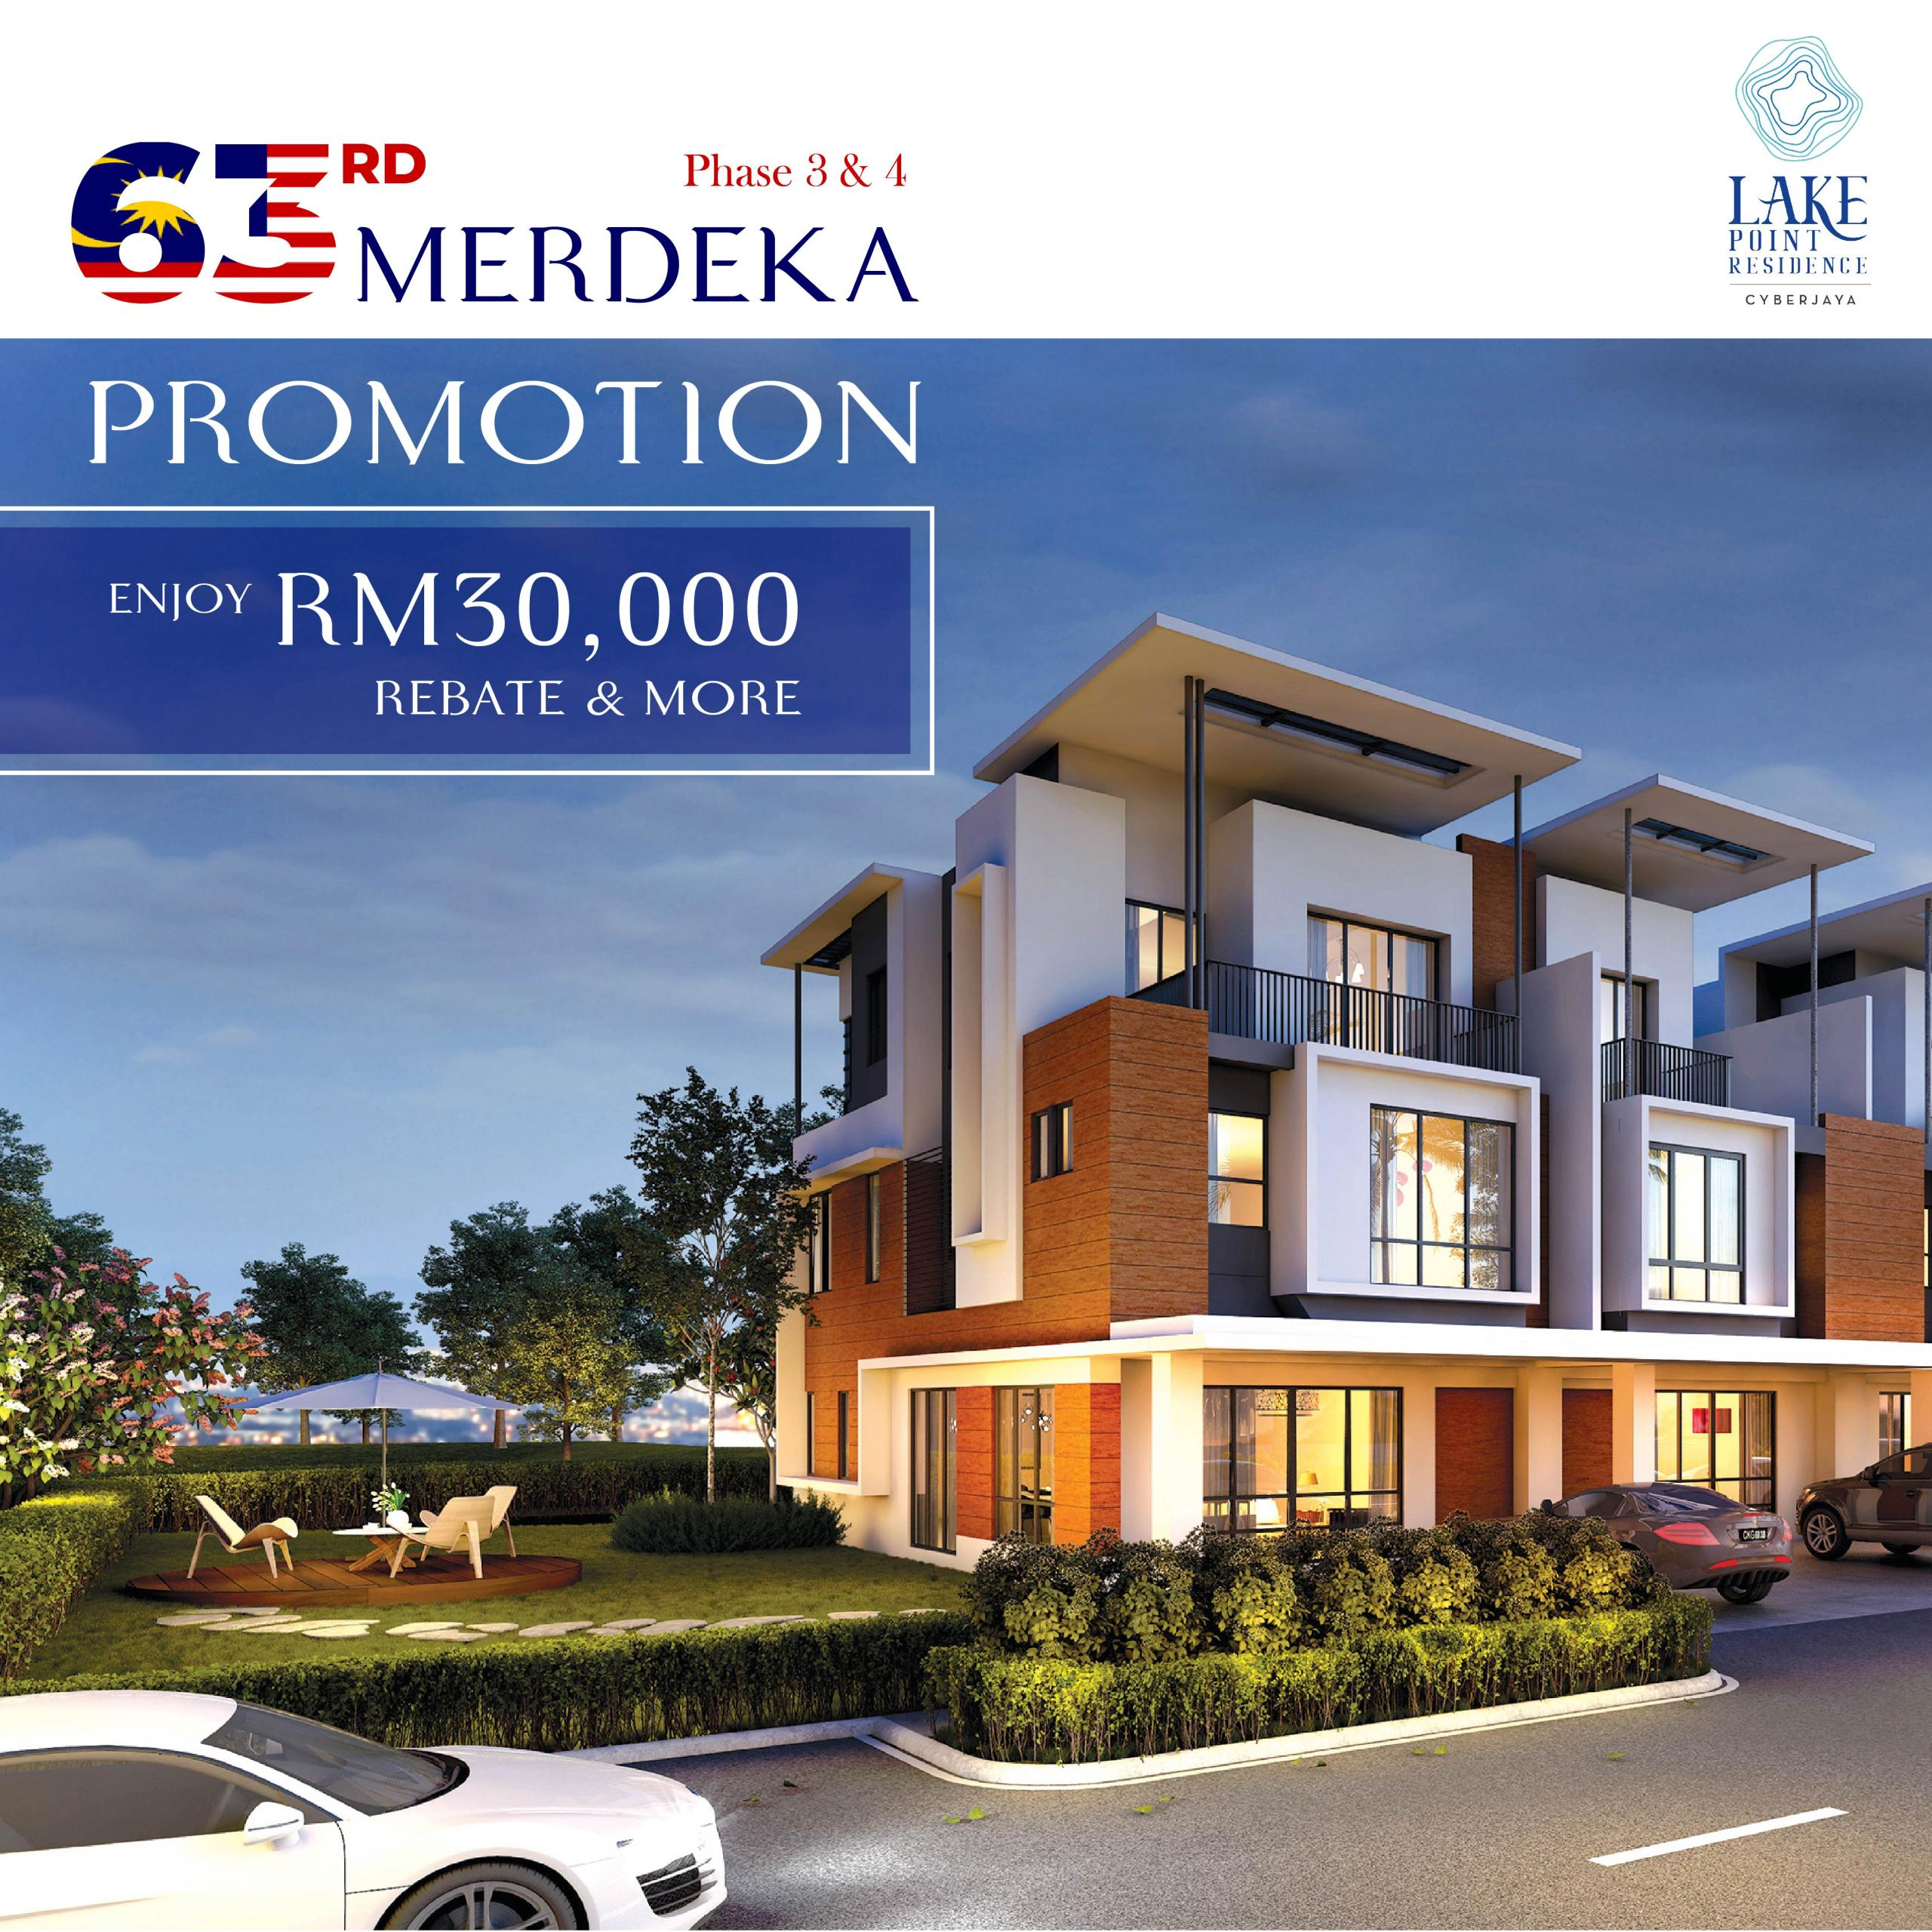 lake point residence merdeka promo